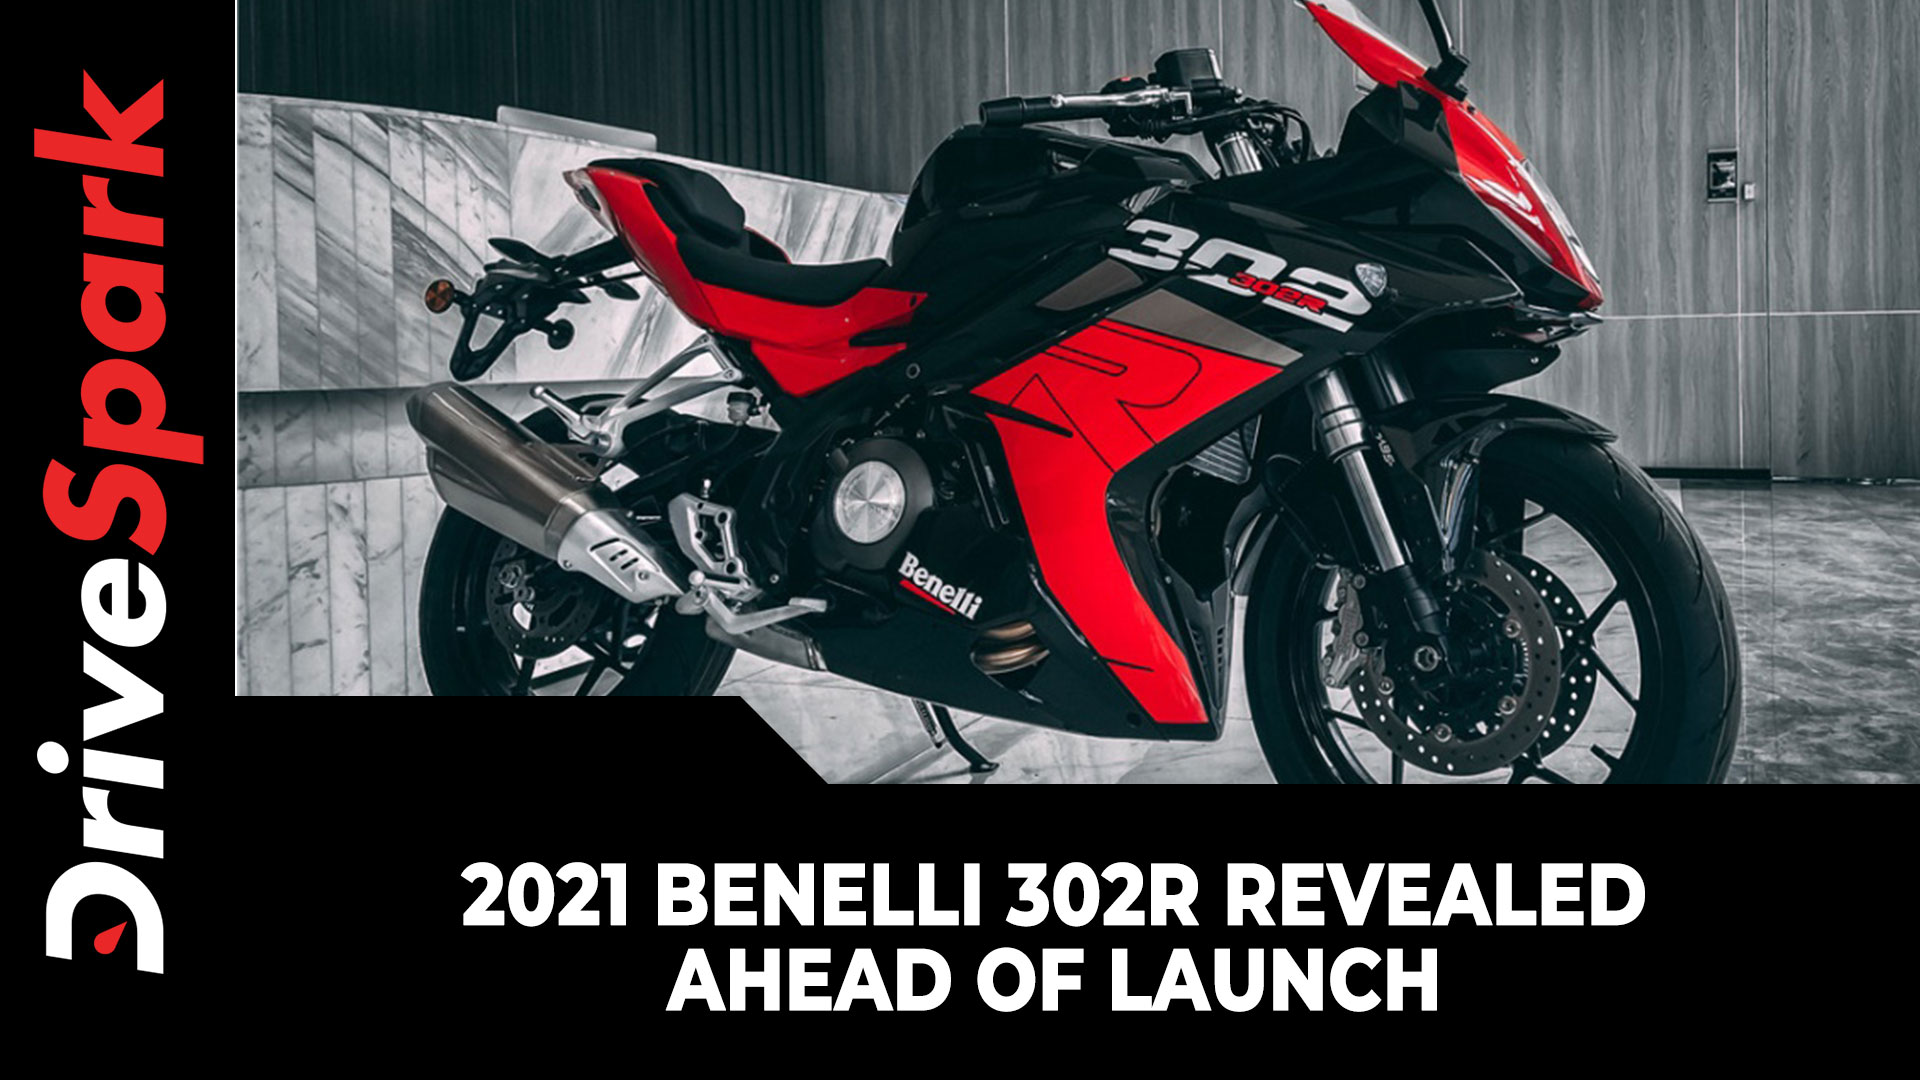 2021 Benelli 302R Revealed Ahead Of Launch | 22 Kilograms Lighter | Features New Design & Styling